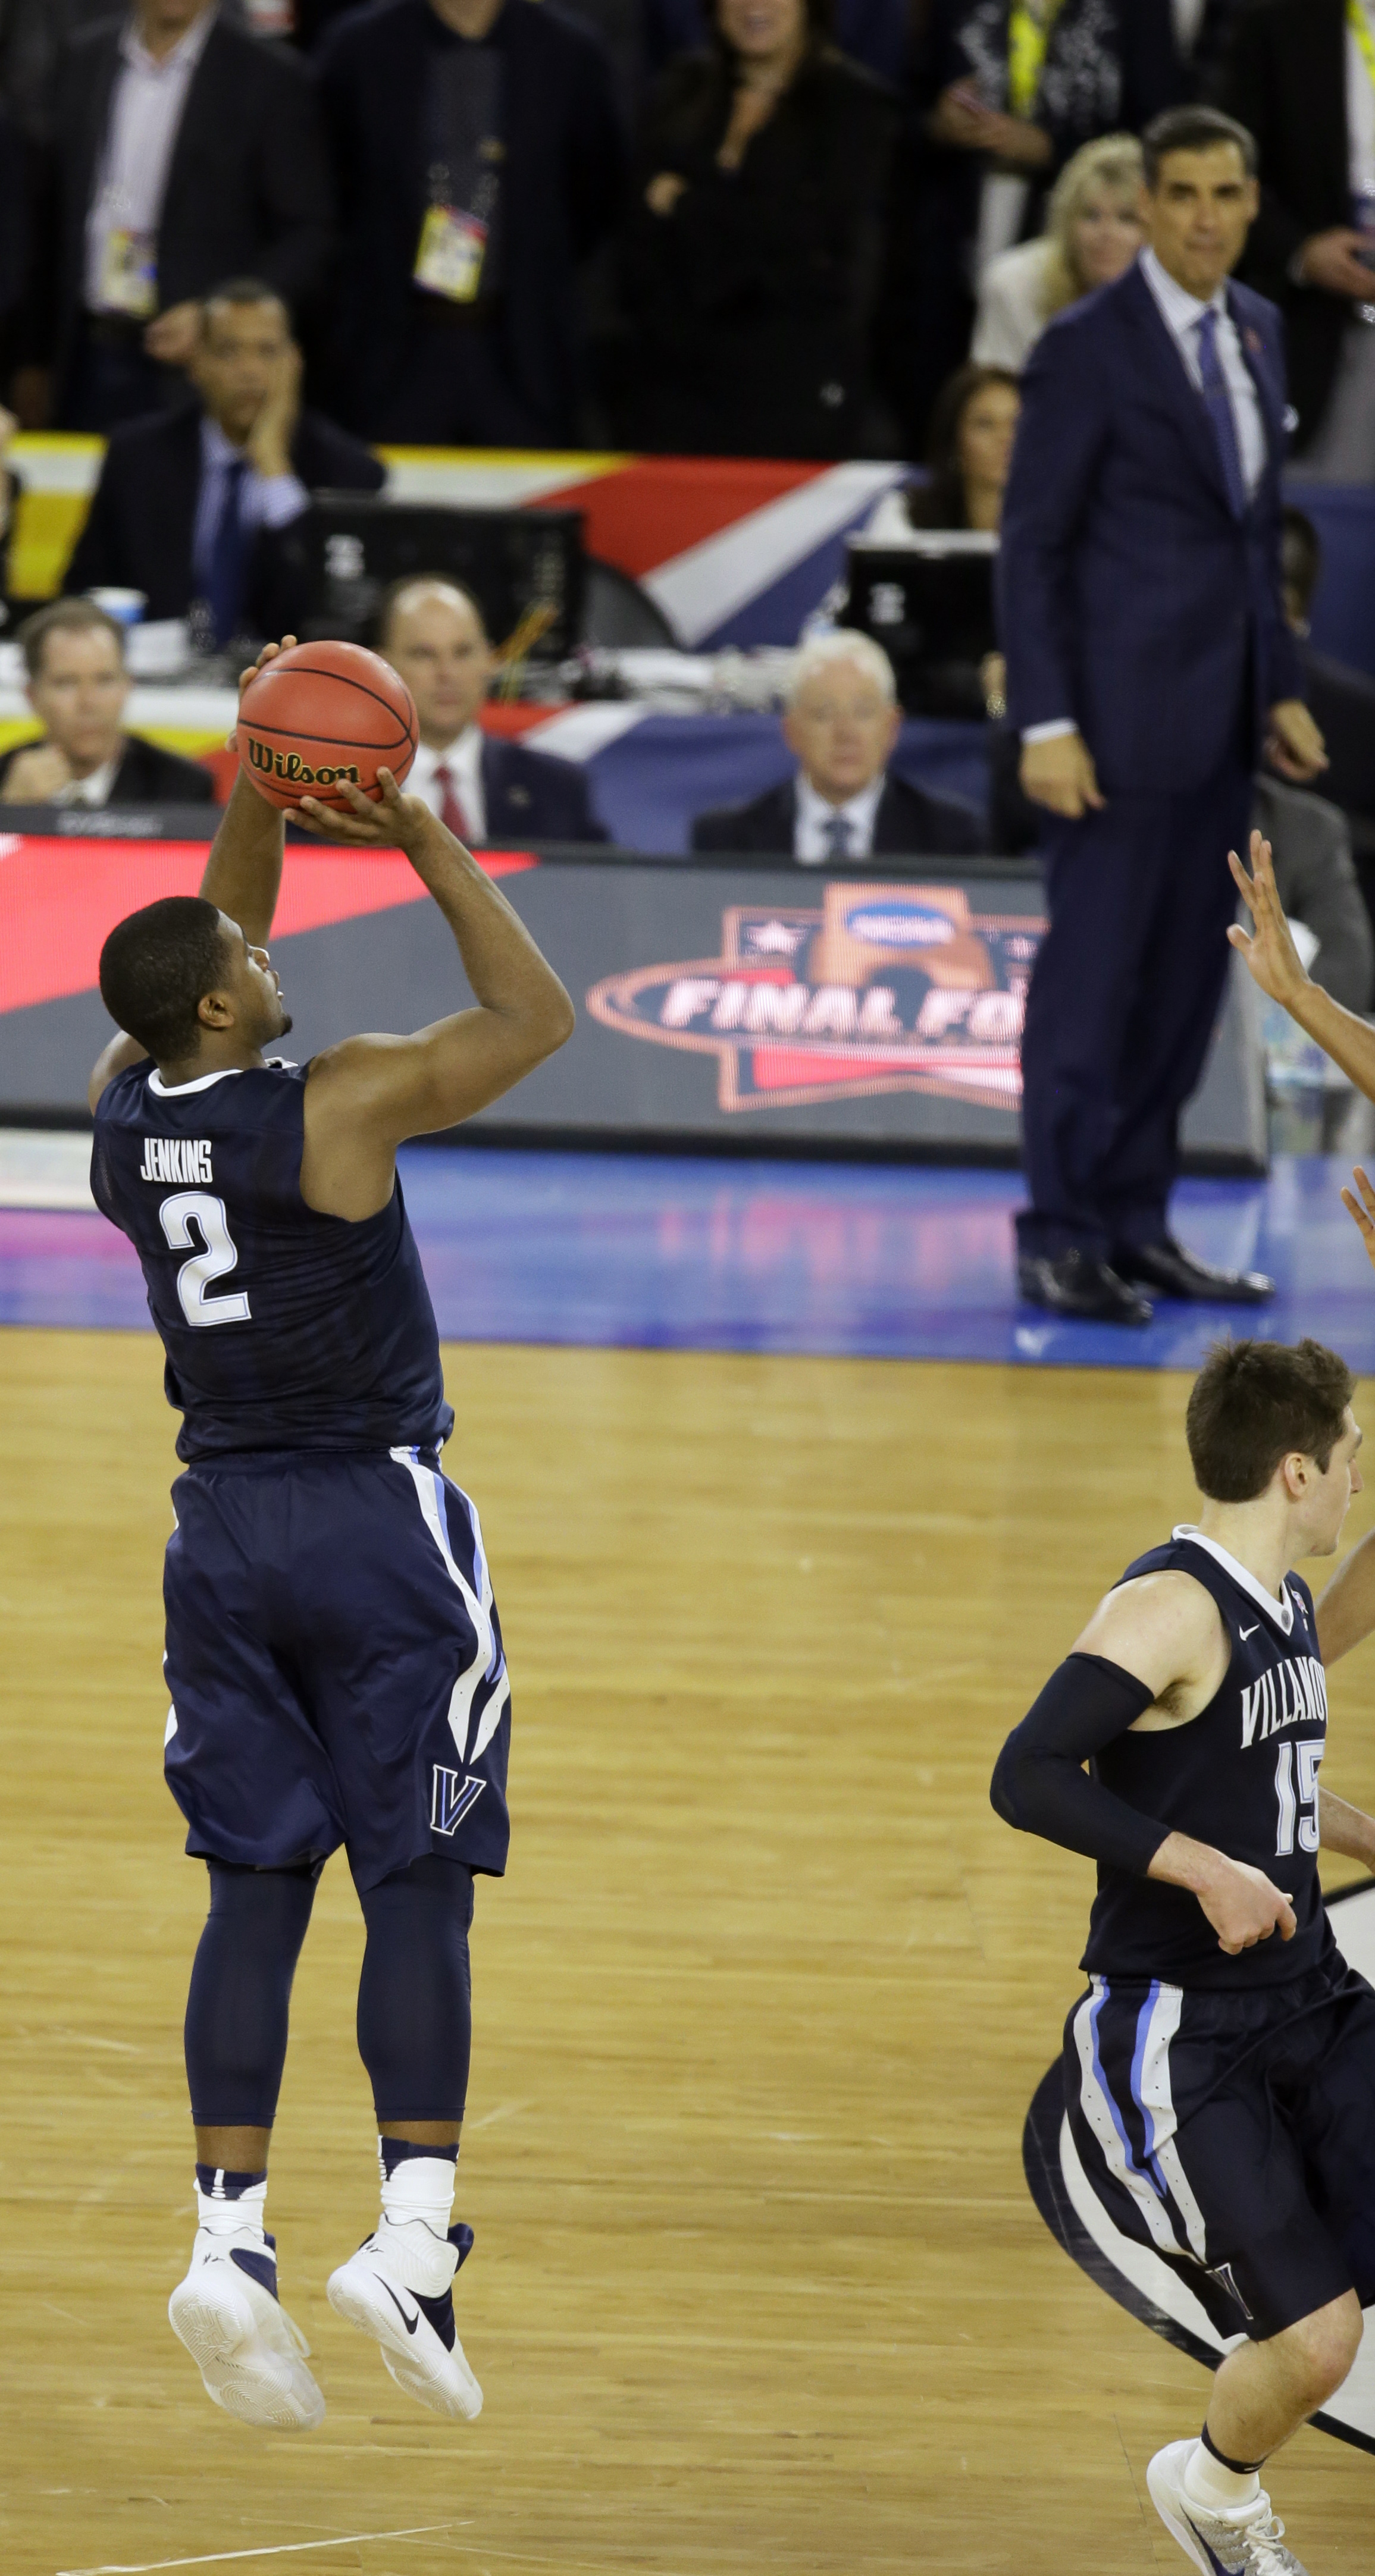 FILE - In this April 4, 2016, file photo, Villanova's Kris Jenkins (2) shoots a game-winning three-point basket in the closing seconds of the NCAA Final Four tournament college basketball championship game against North Carolina, in Houston. Villanova won